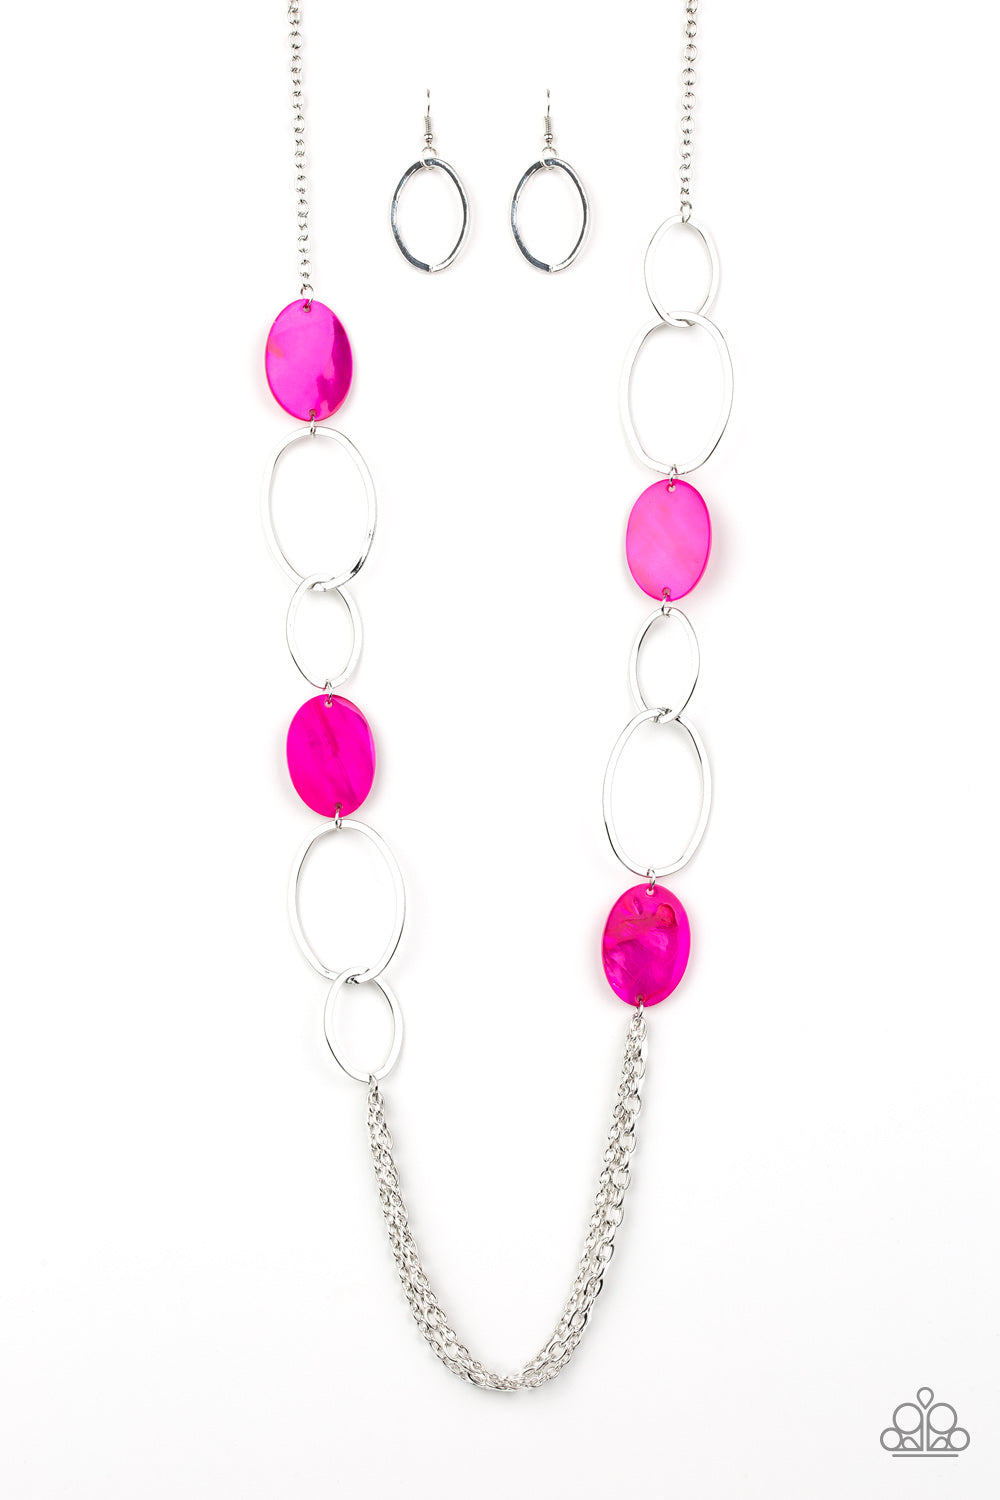 Kaleidoscope Coasts - Pink Necklace